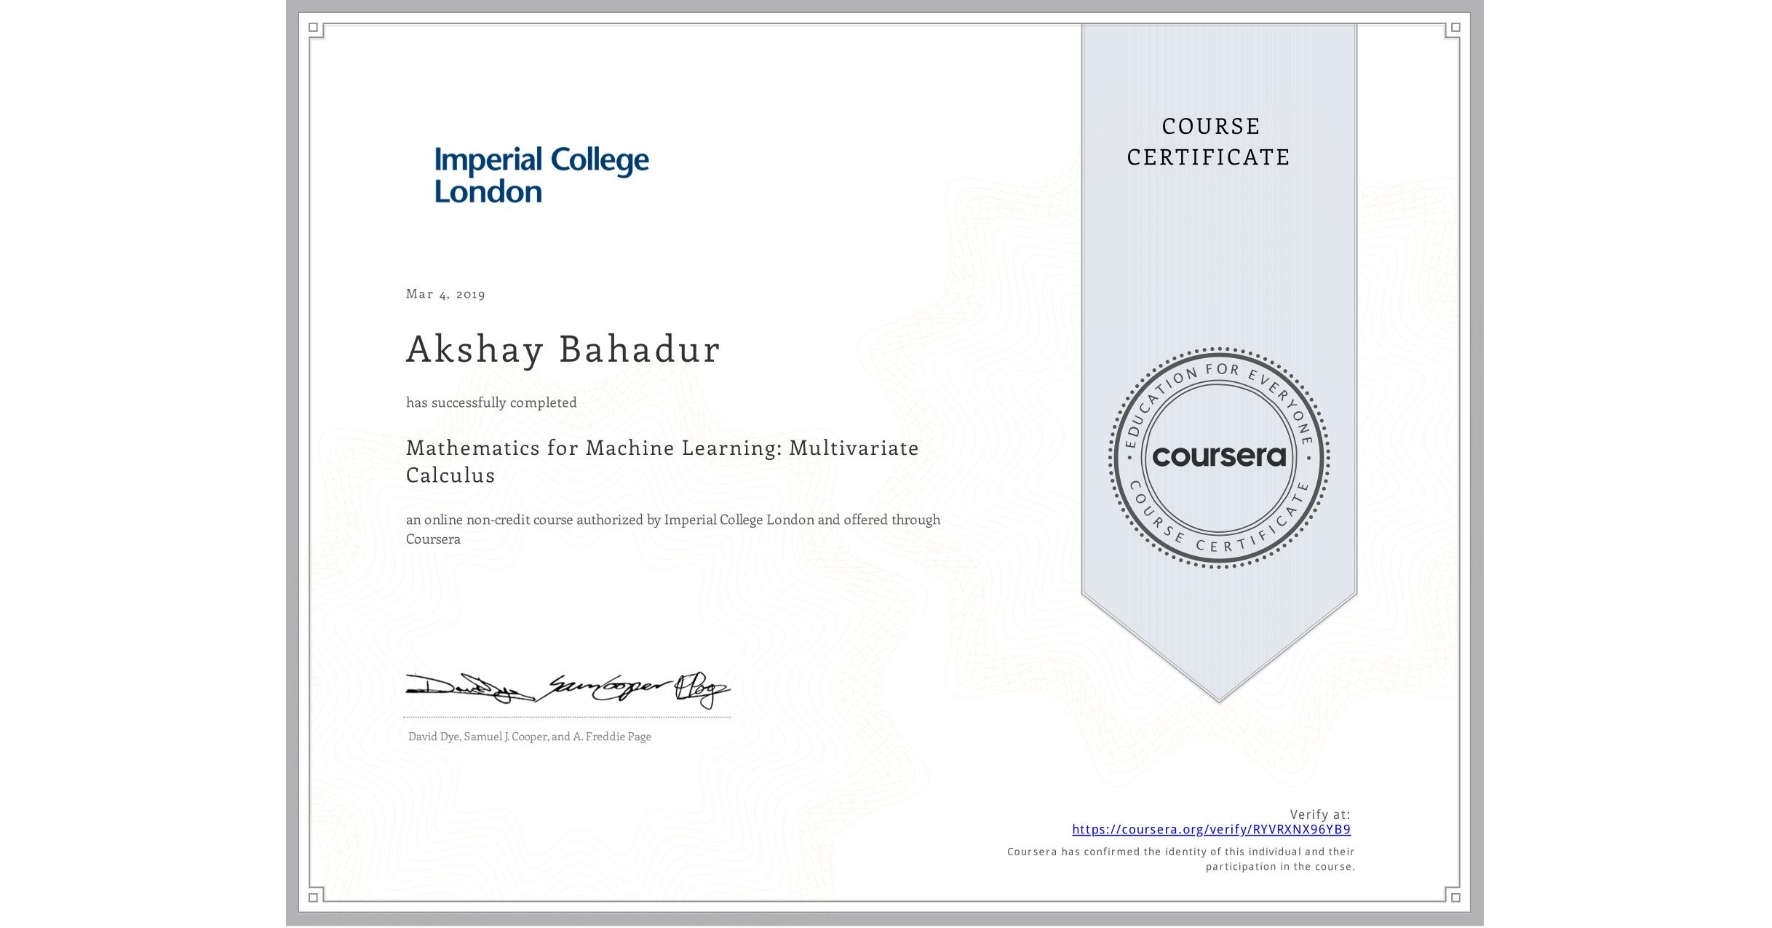 View certificate for Akshay Bahadur, Mathematics for Machine Learning: Multivariate Calculus, an online non-credit course authorized by Imperial College London and offered through Coursera